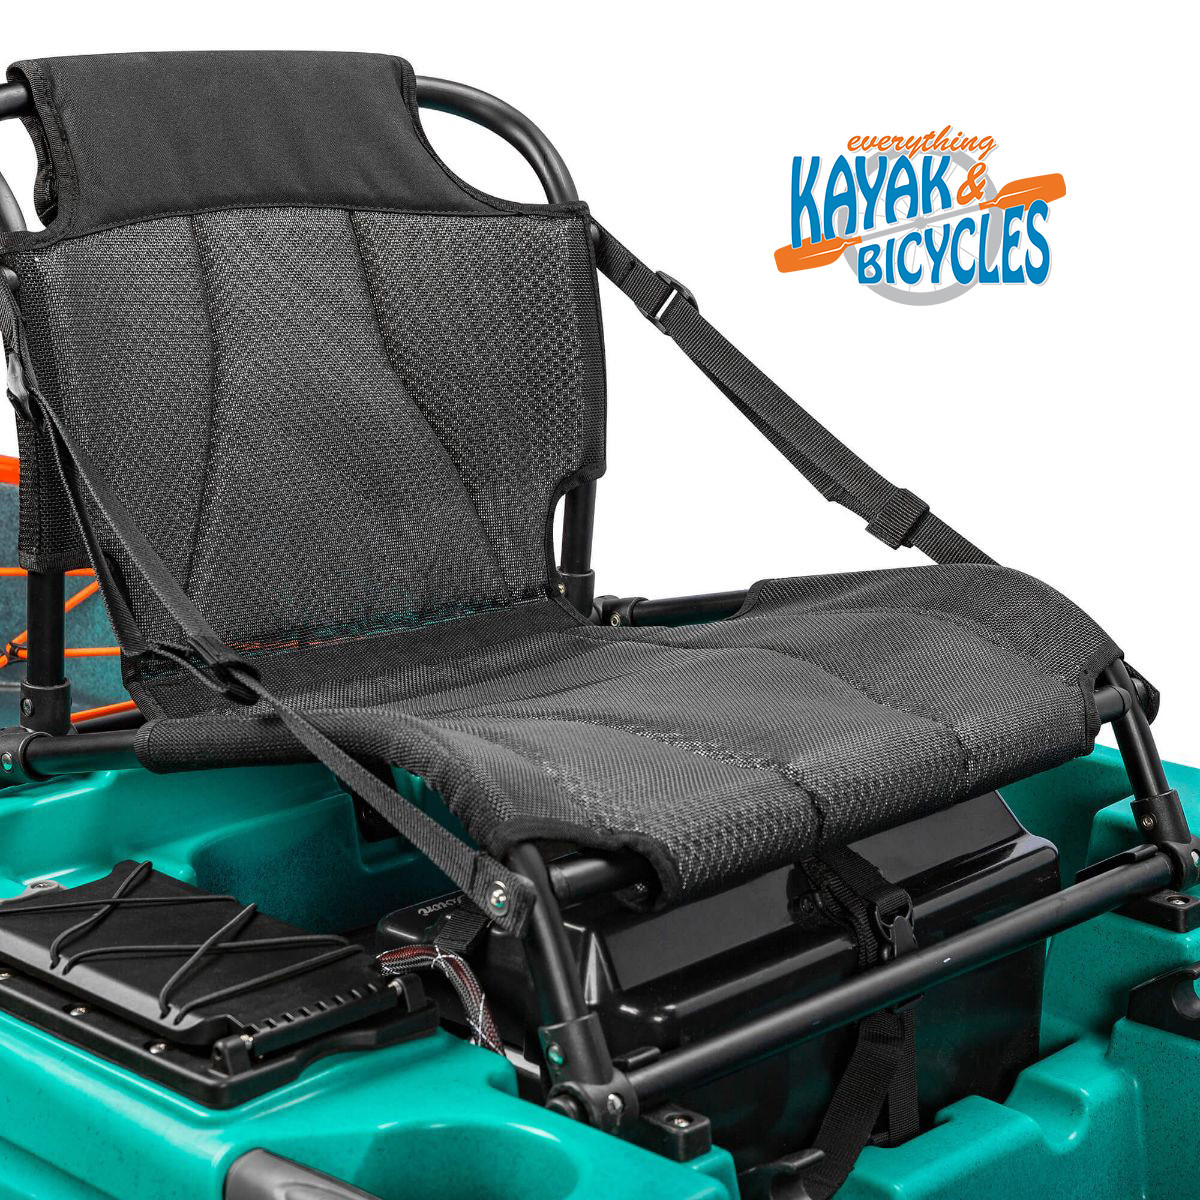 Premium seating for all day comfort. Dual-layer Textilene is durable, UV resistant and easy to clean. A mid-layer of 3D mesh adds comfort without inhibiting Textilene's natural breathability. Position seat high or low in the kayak. Removable for transport